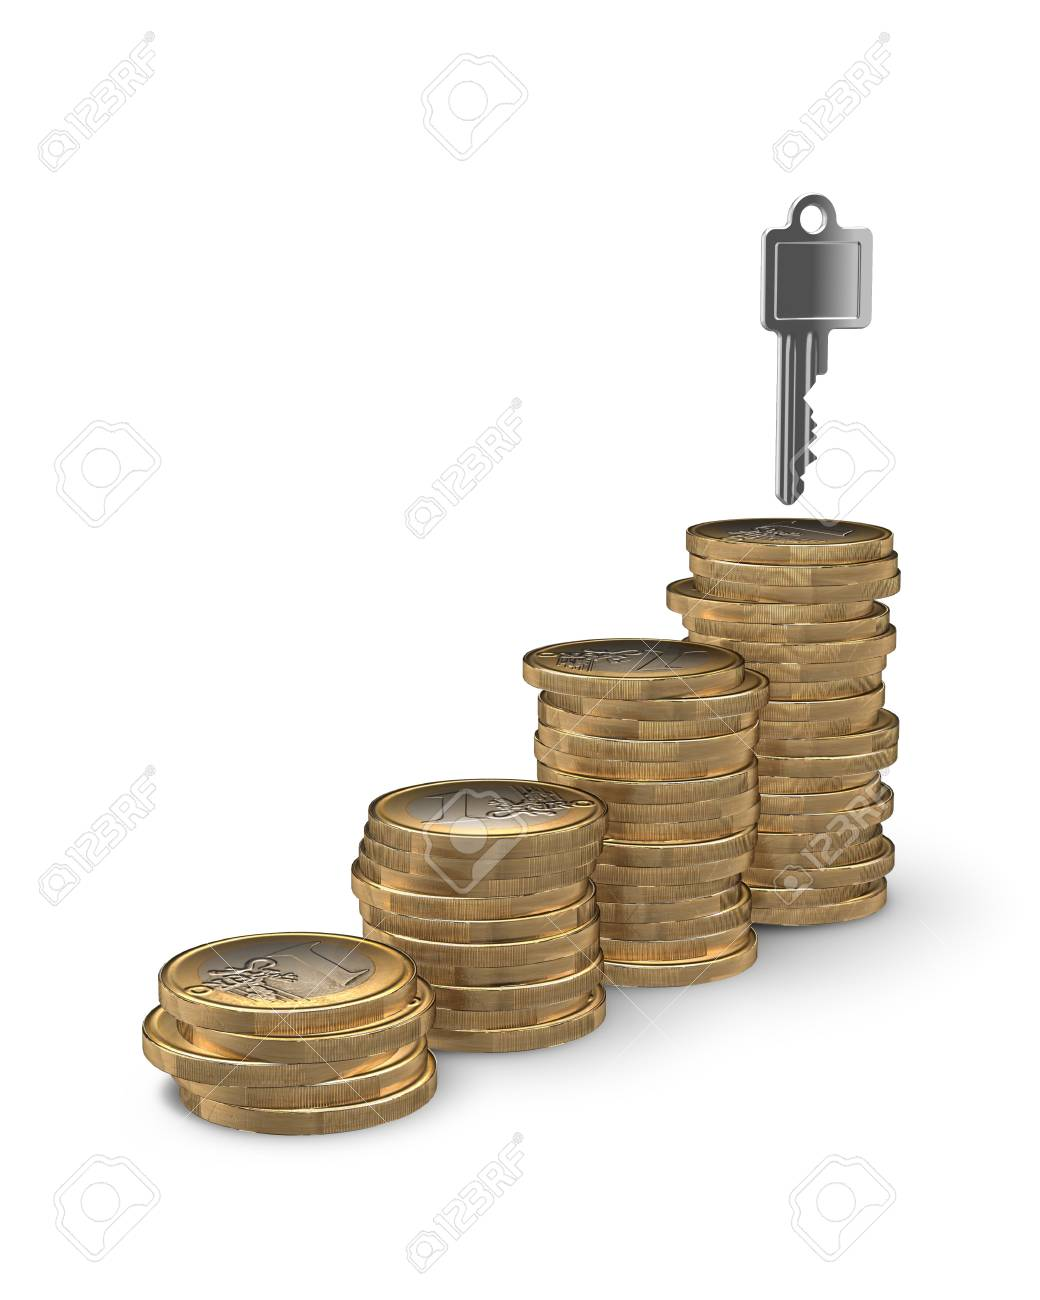 Stairway of coins leading to key to your home - home owning or financing concept Stock Photo - 7972138